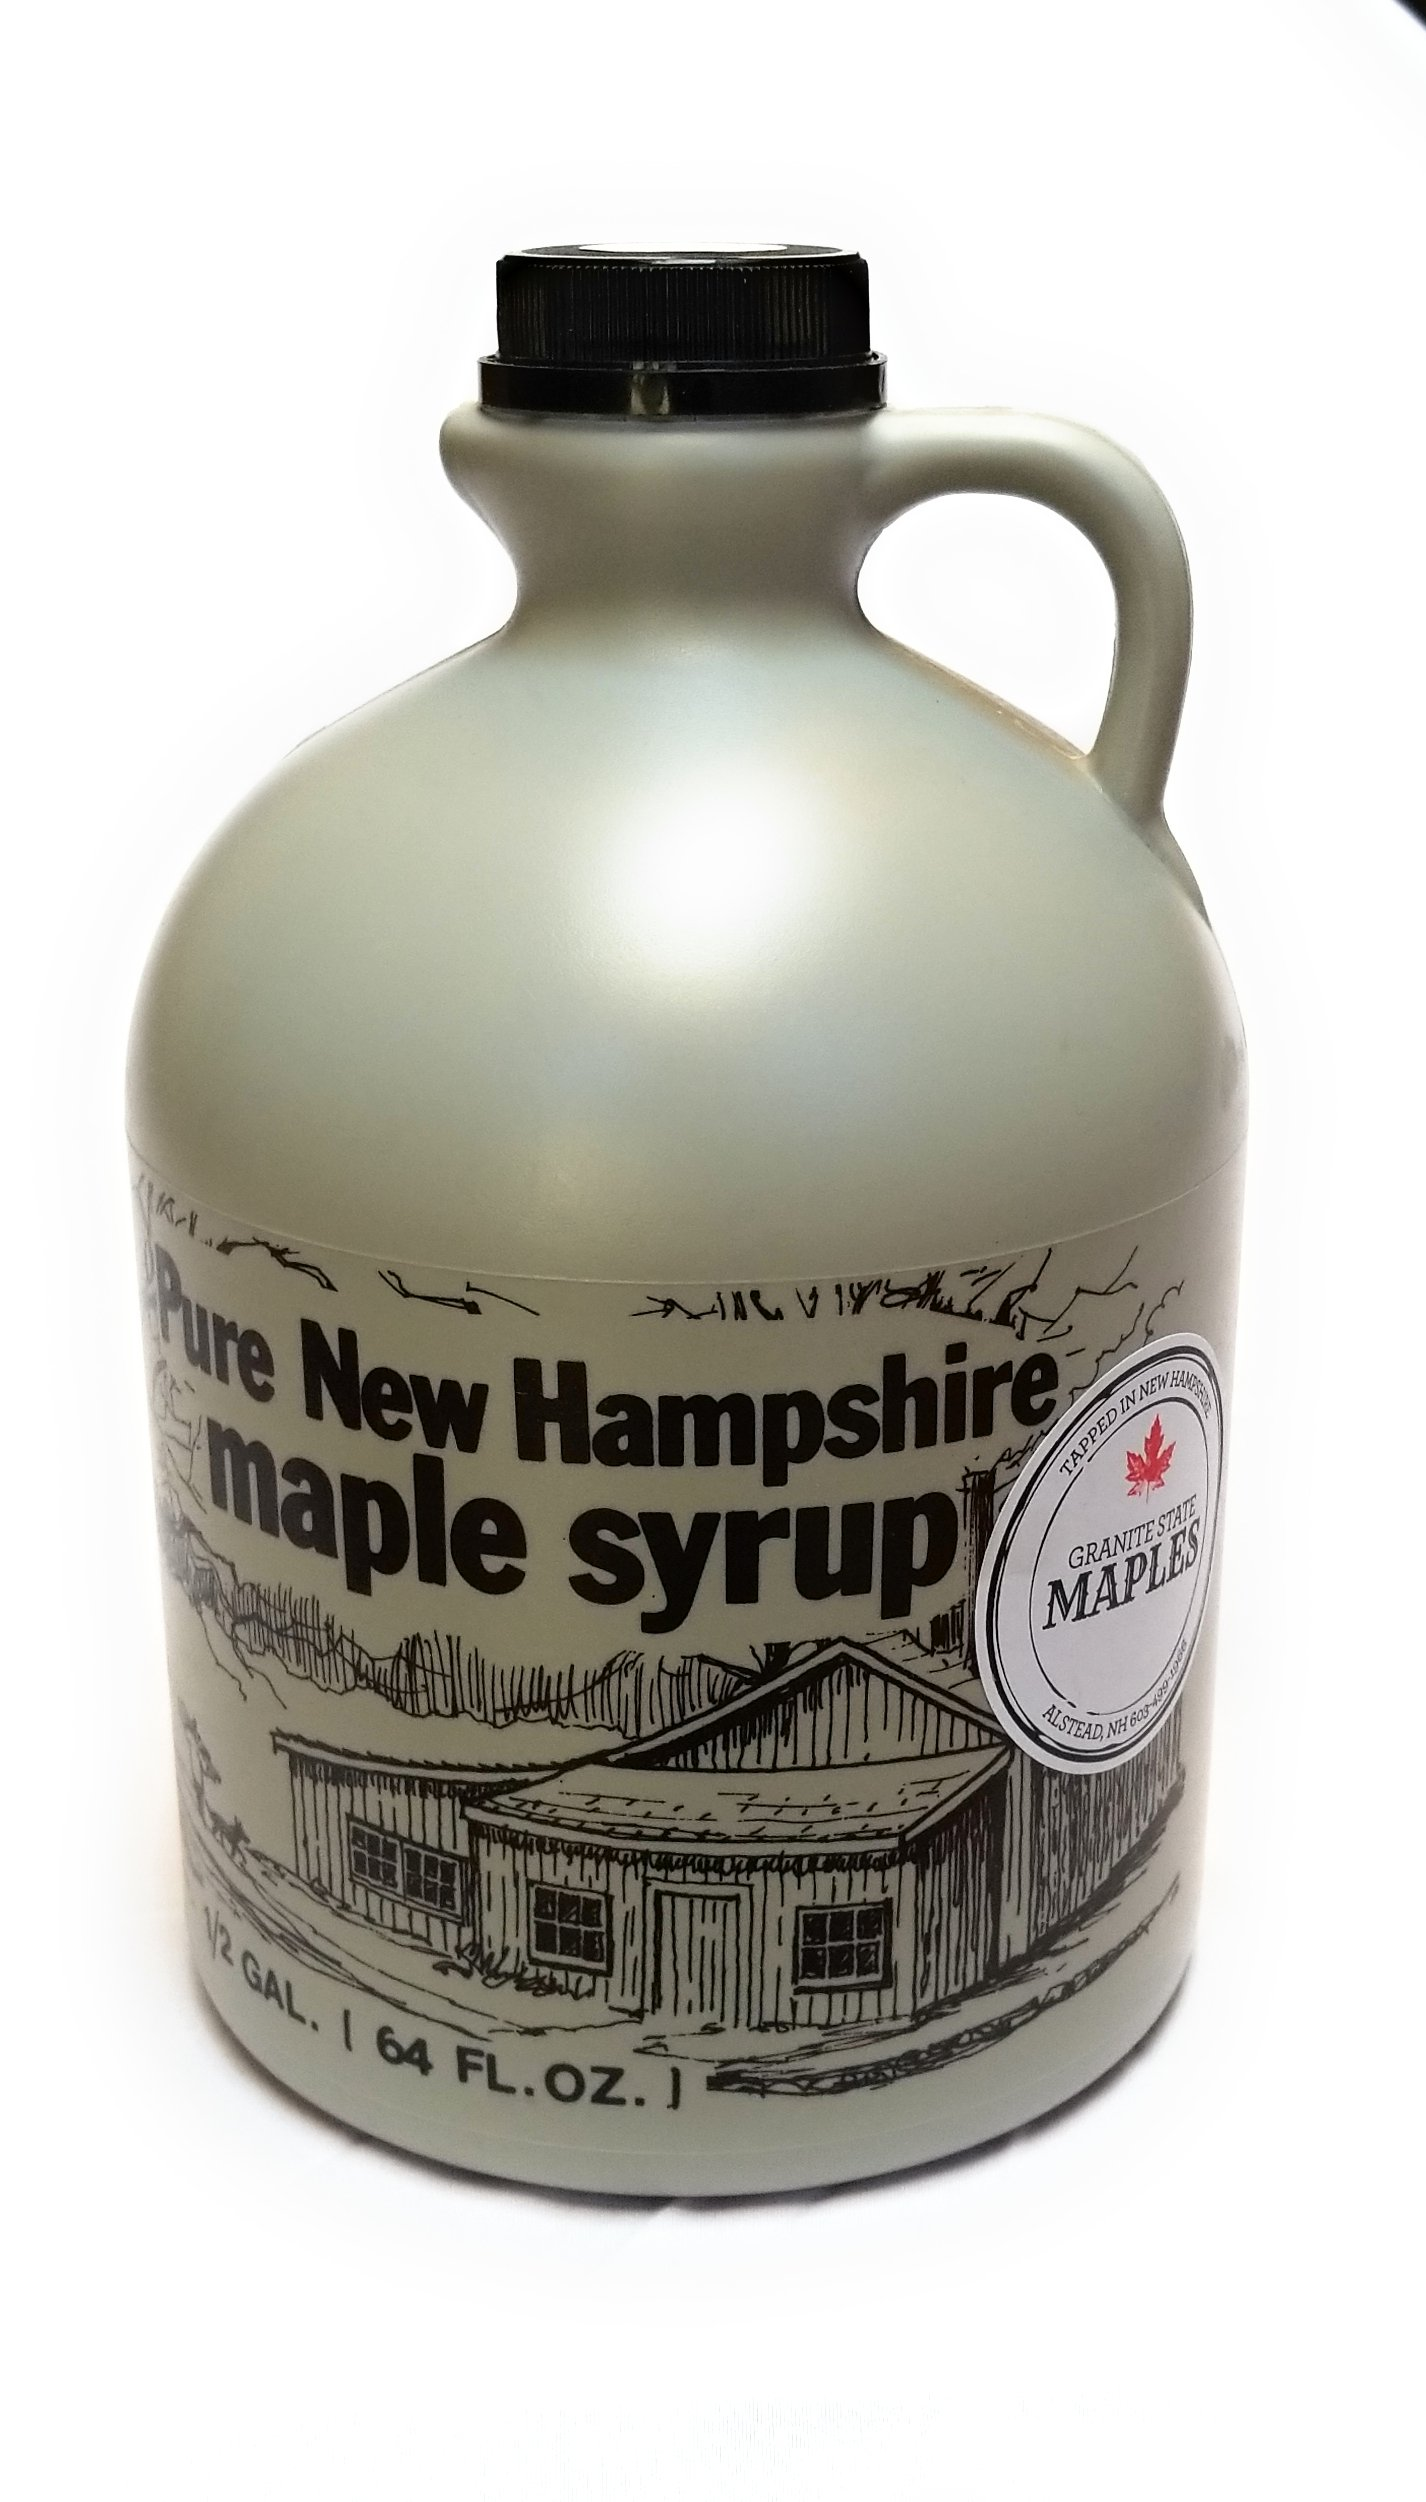 Granite State Maples 128Fl Oz.(1 Gallon) Pure New Hampshire Maple Syrup, Grade A